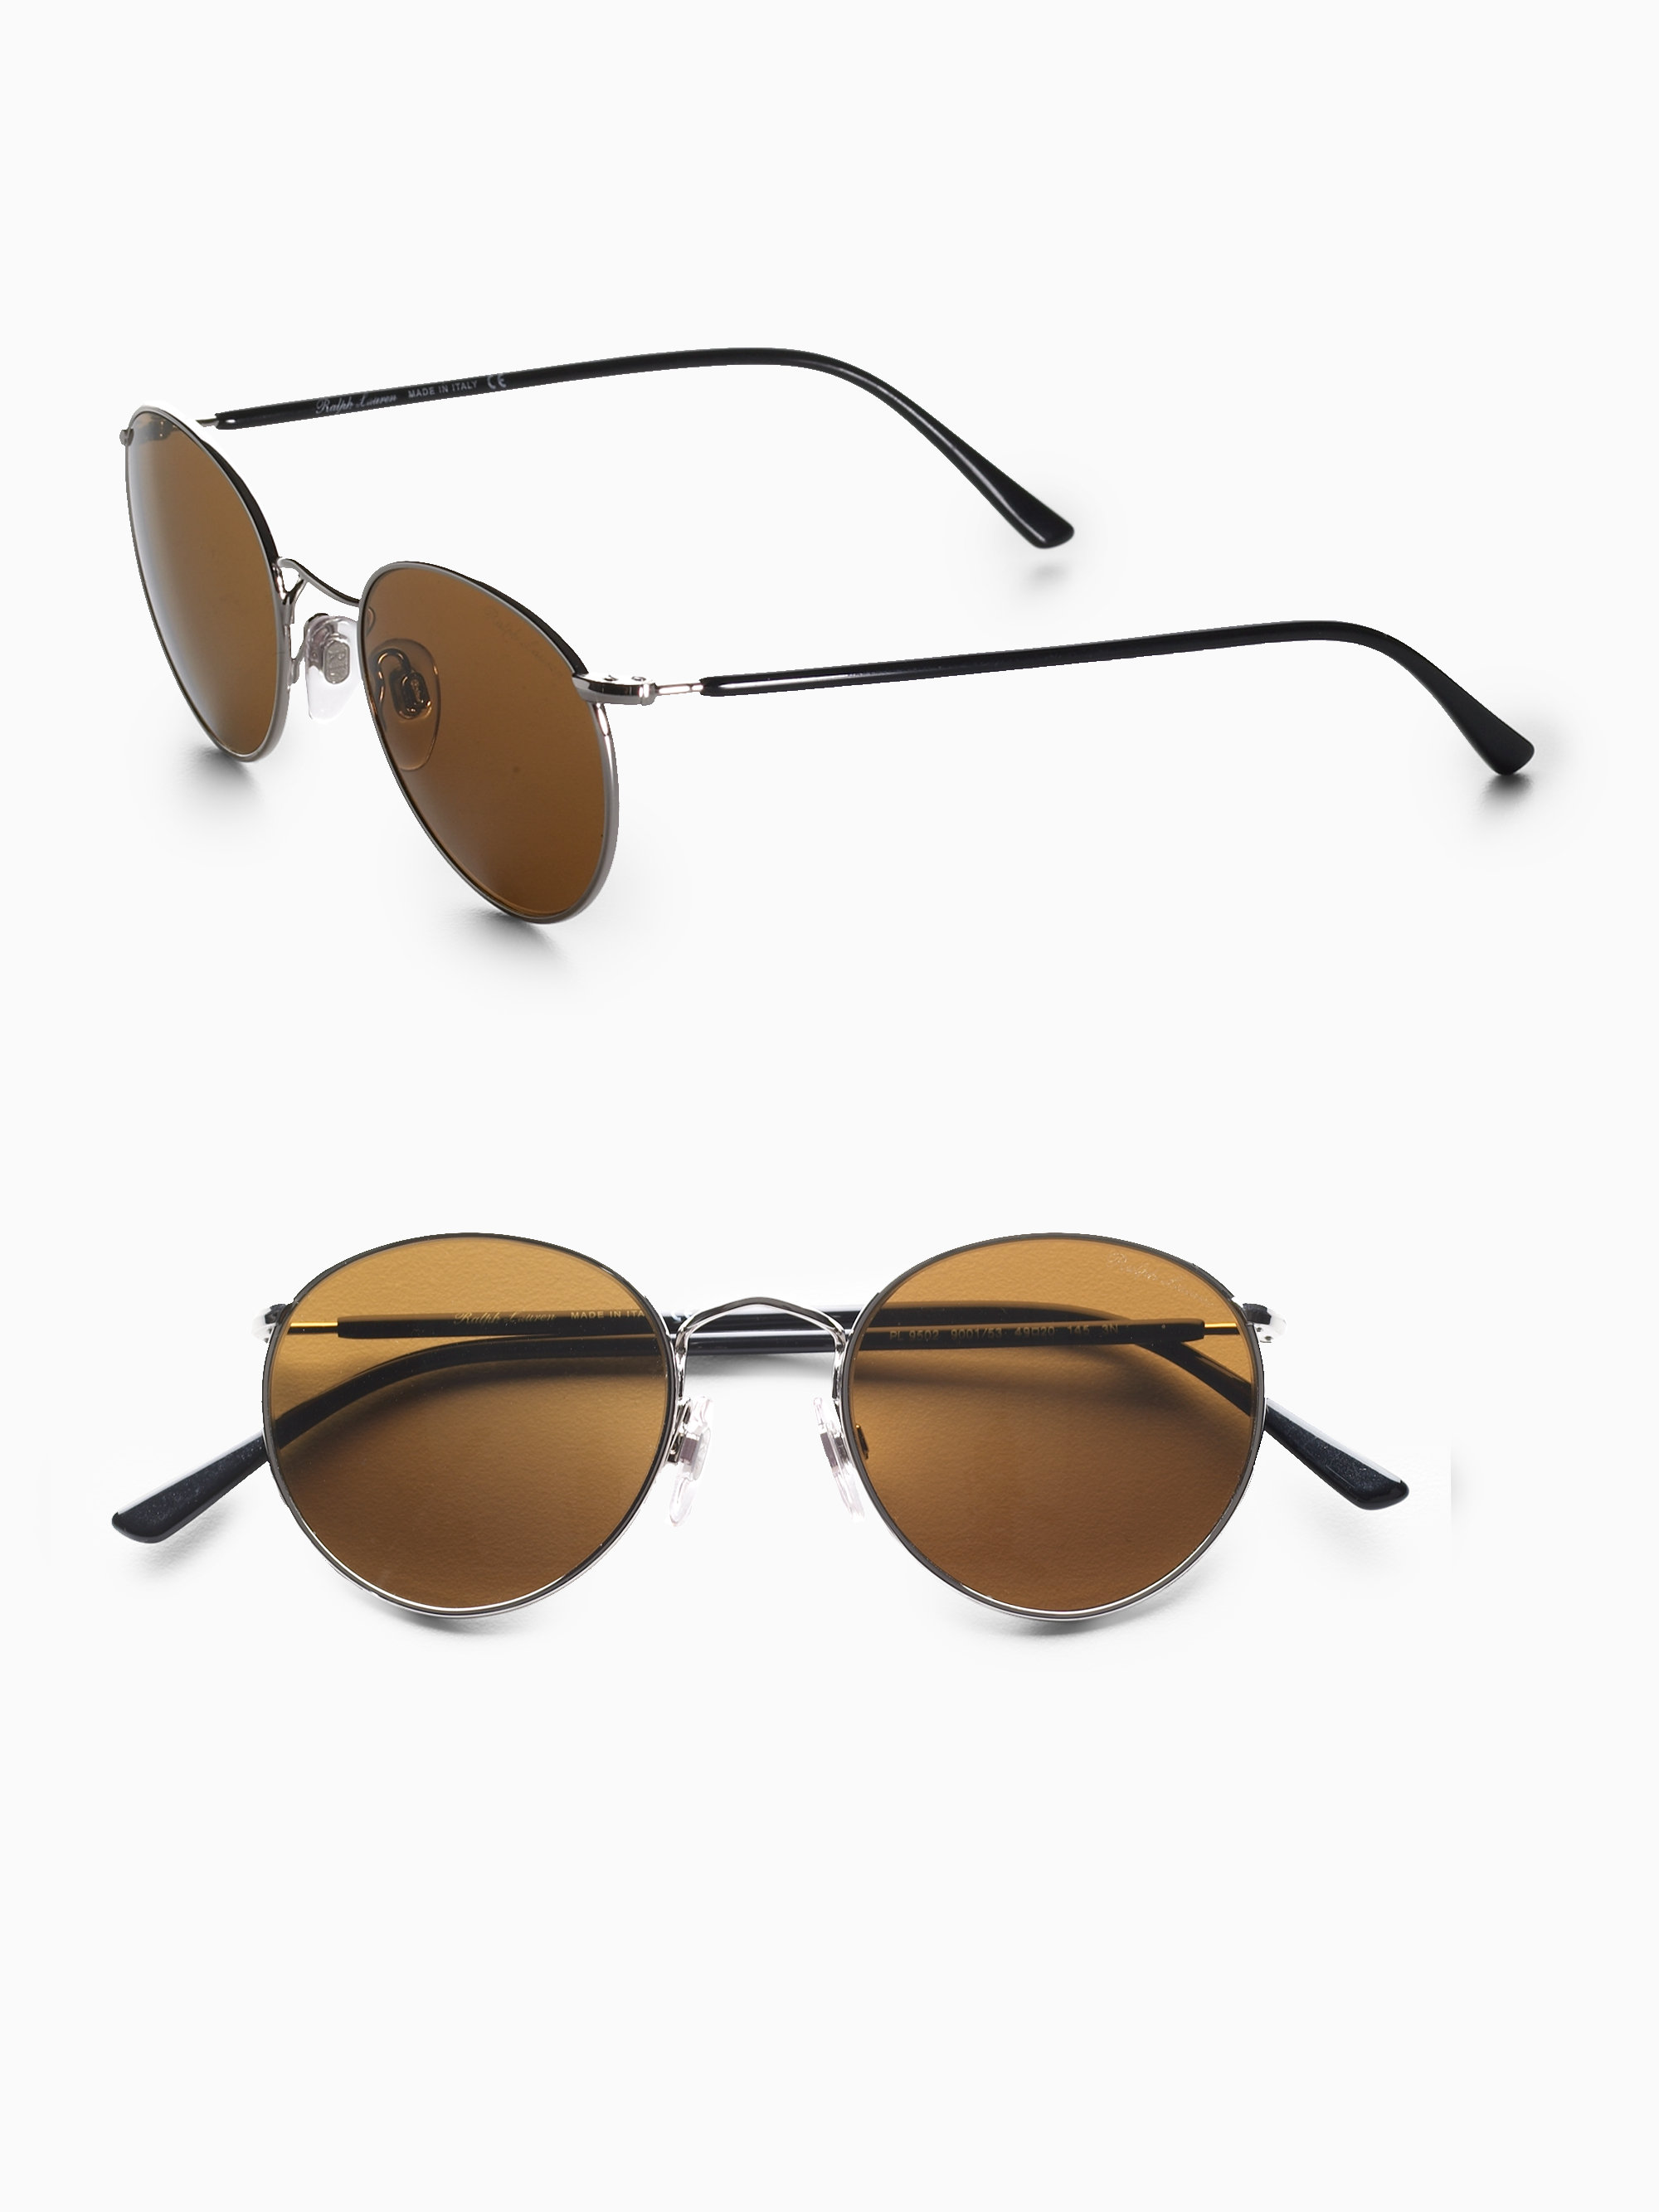 2a47edbfdd01 polo-ralph-lauren-silver-brown-small-round-sunglassessilver-frames-product-1-7671384-260716428.jpeg